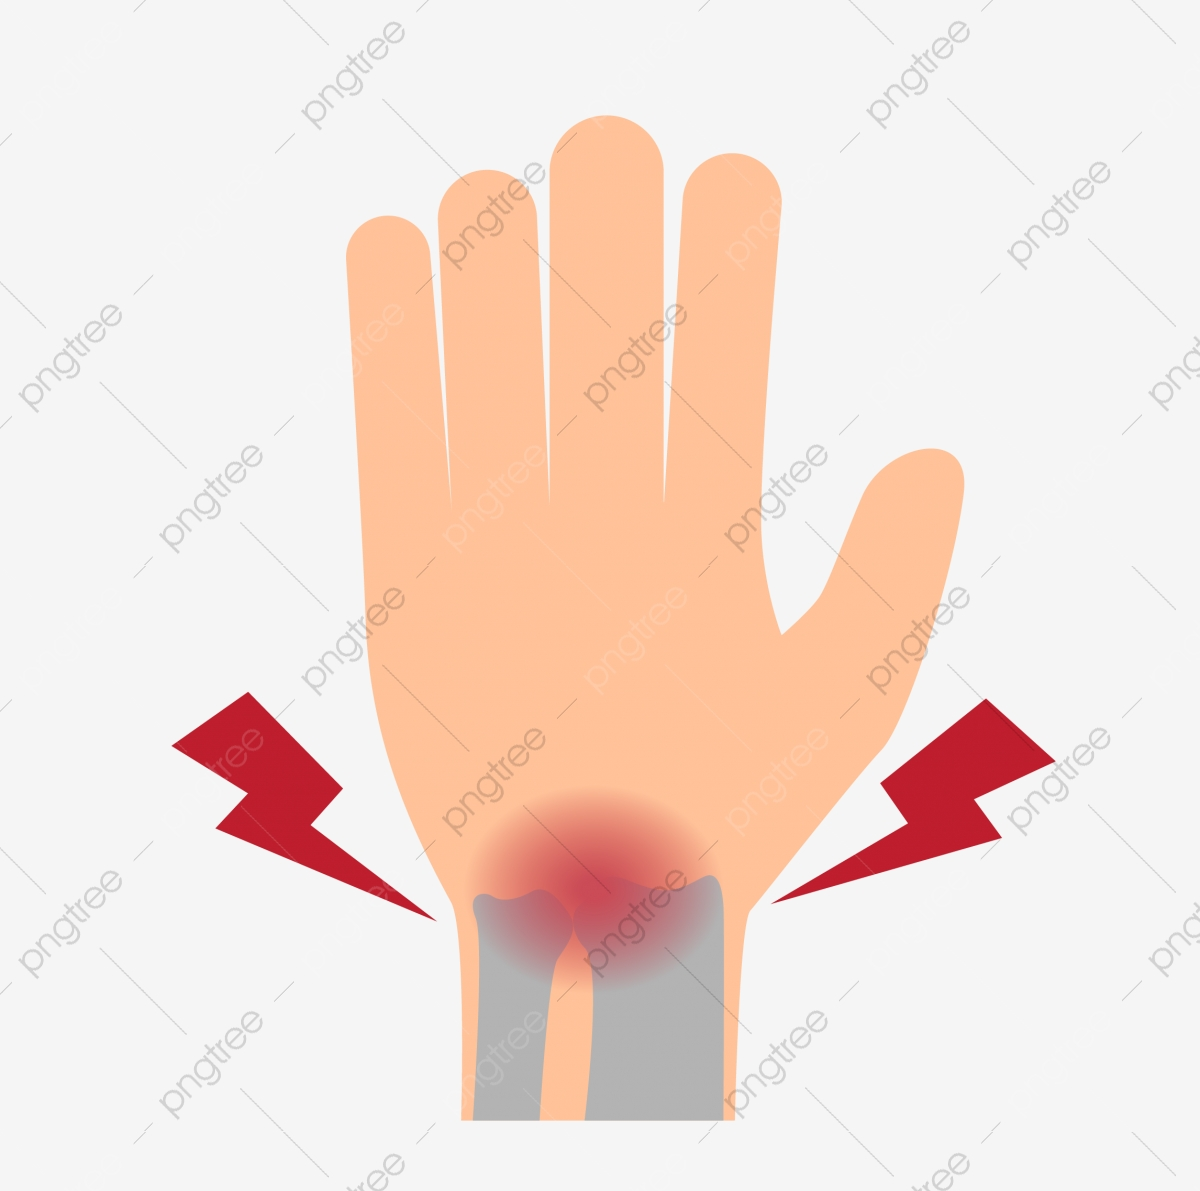 Injured Injured Hand Fracture Joint Bone Injury Wrist Wrist Injury Png And Vector With Transparent Background For Free Download Similar with lady finger png. https pngtree com freepng injured injured hand fracture joint 3921488 html